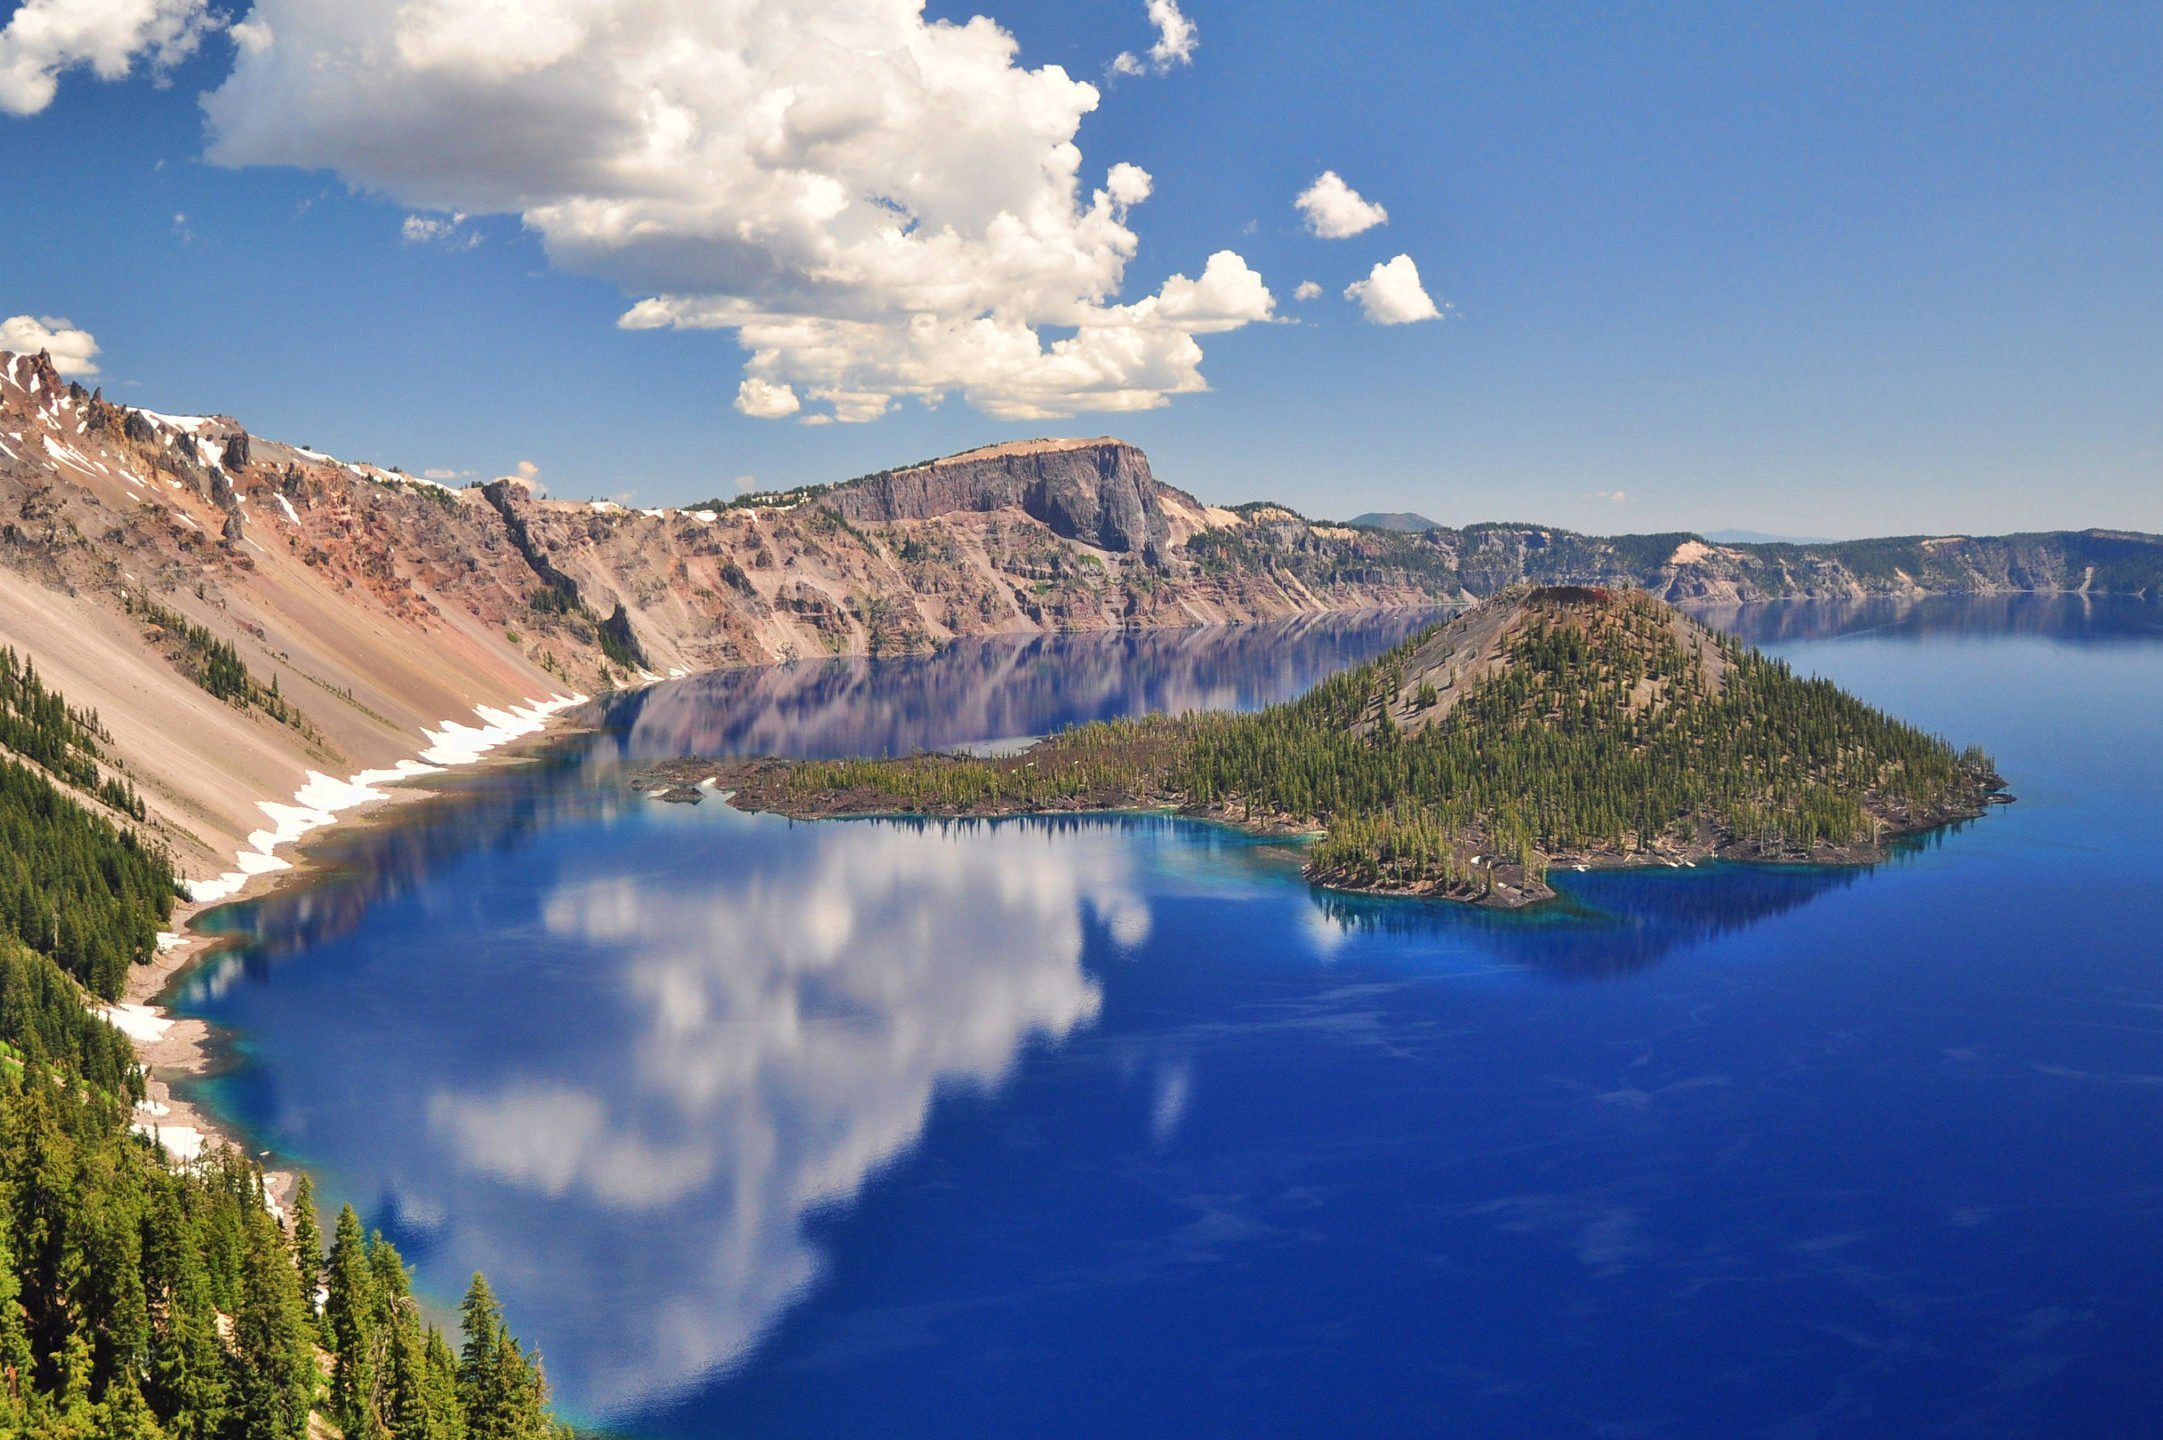 Landscape with Crater Lake National Park